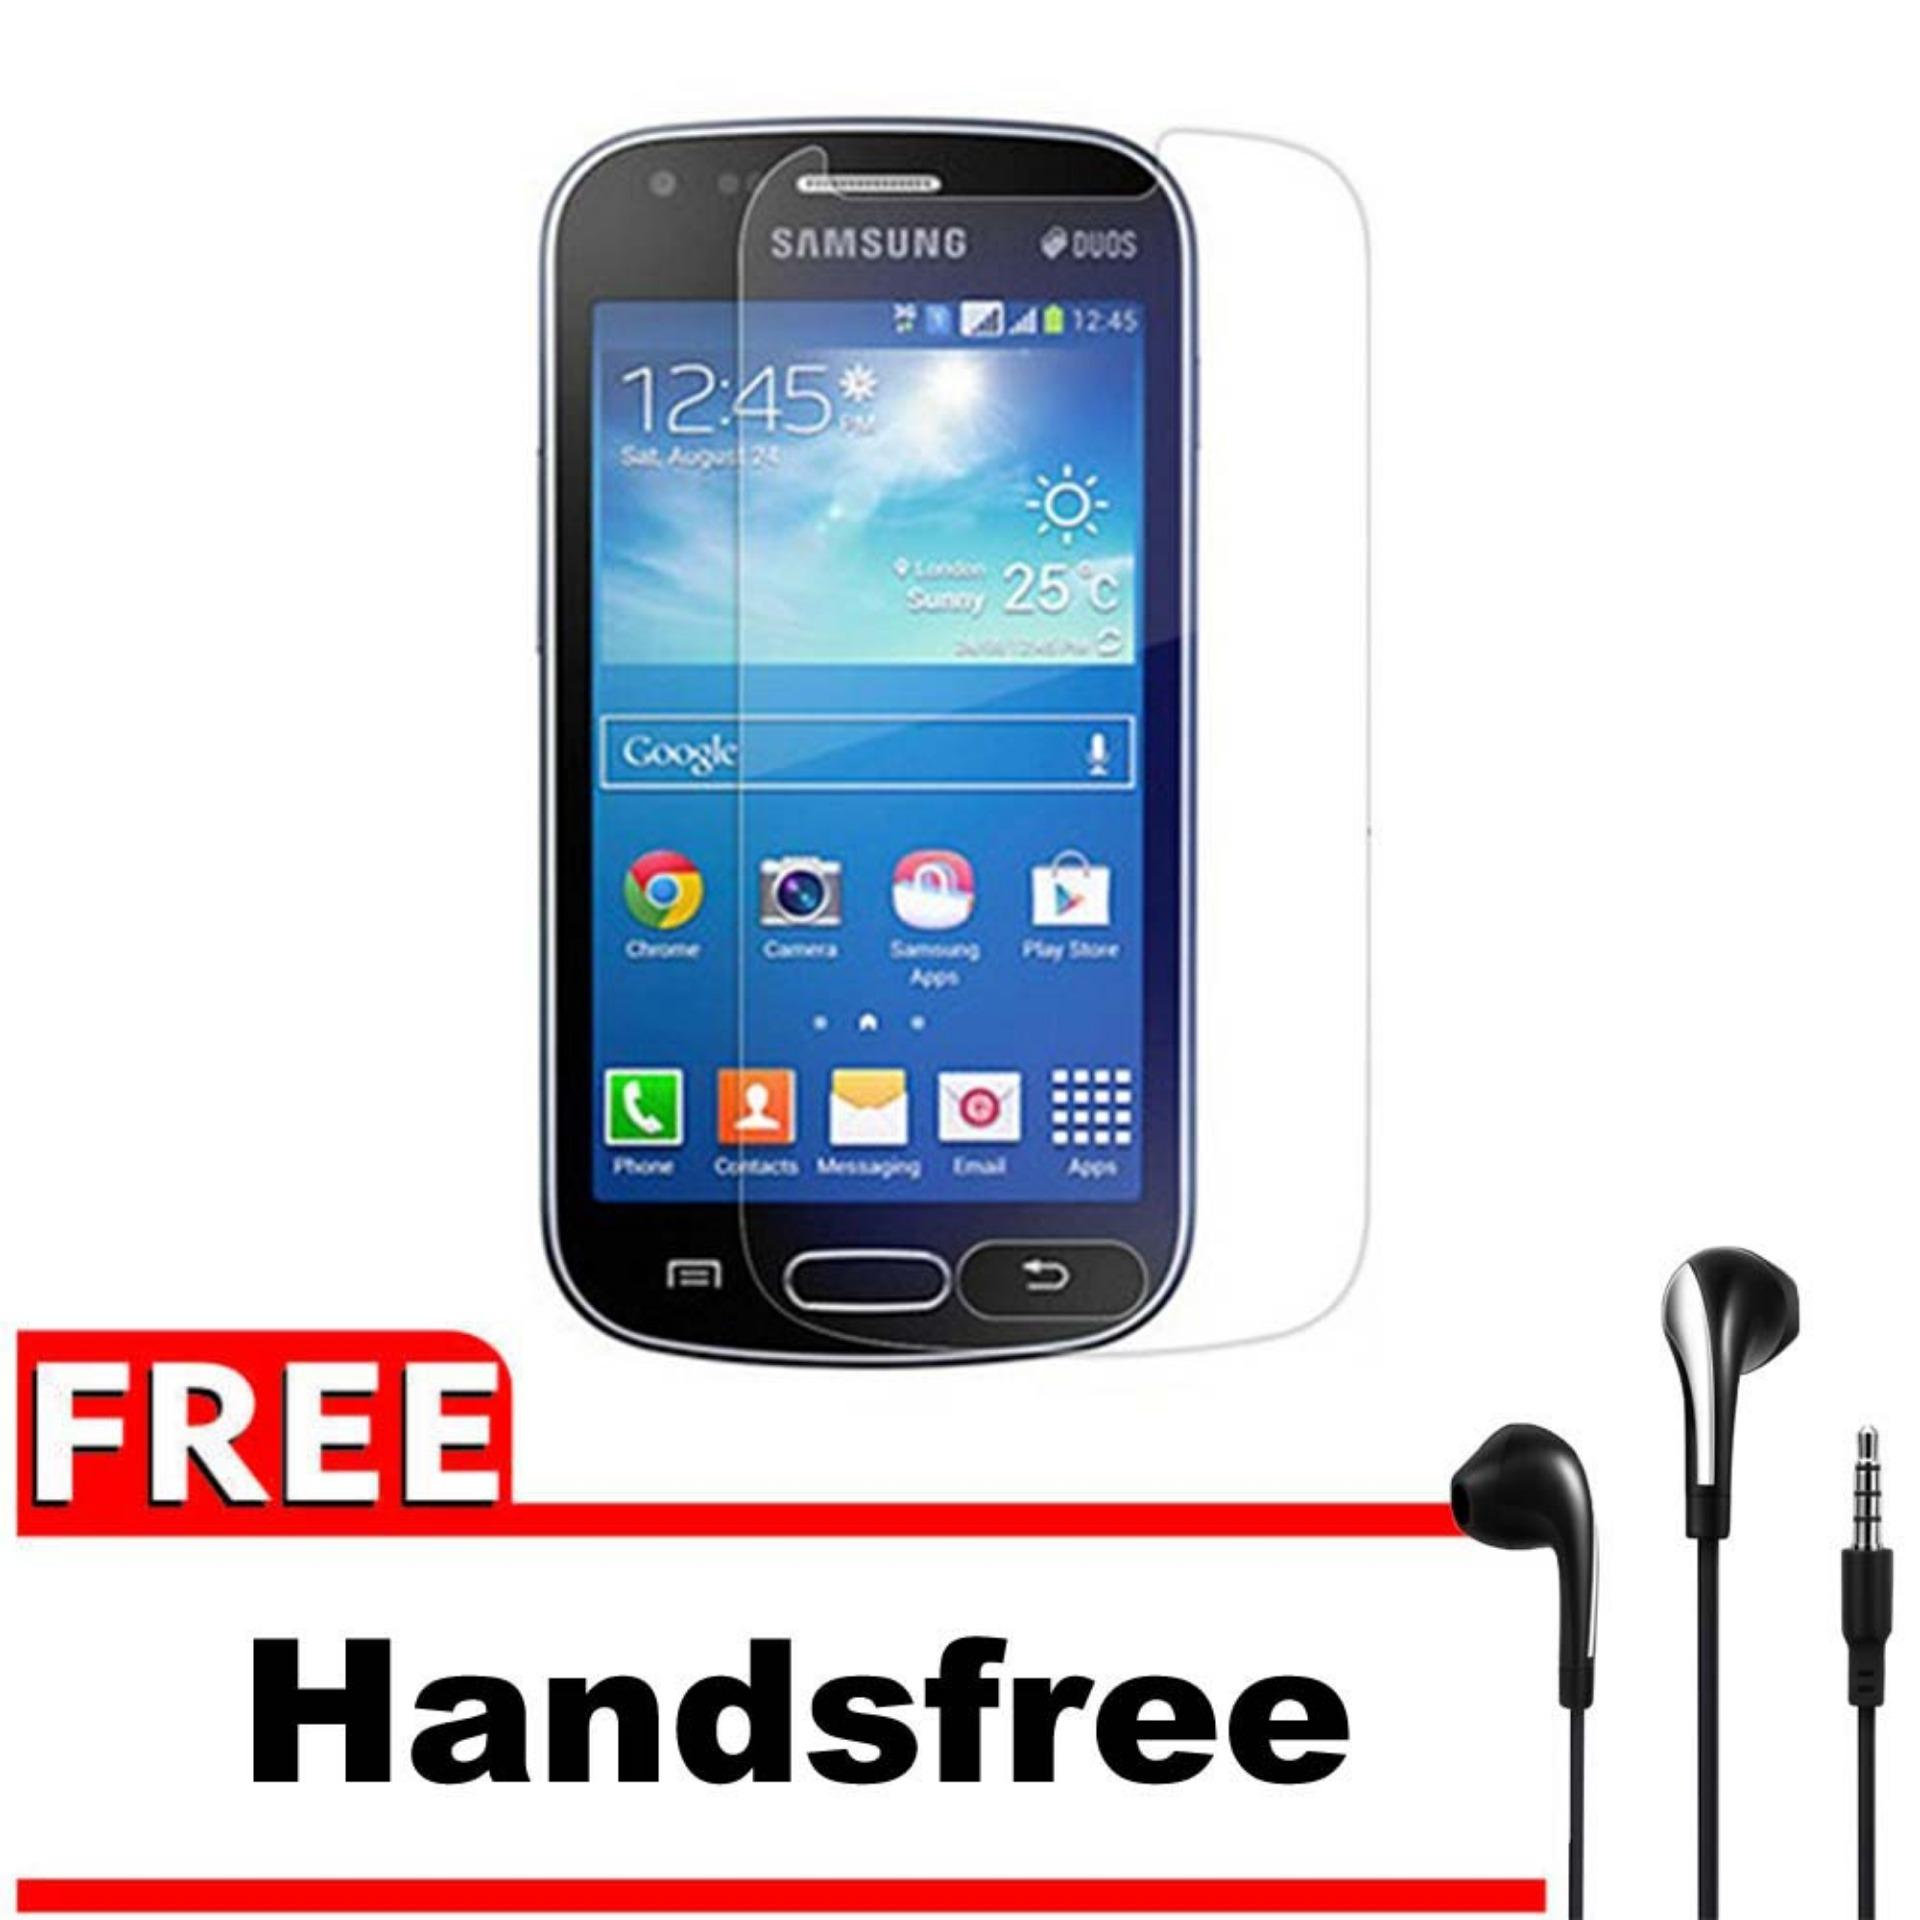 Vn Samsung Galaxy Ace 3 / Neo / Lite / S7270 / S7275 / S7272 / 4G LTE / Duos Tempered Glass 9H Screen Protector 0.32mm + Gratis Free Handsfree Earphone ...